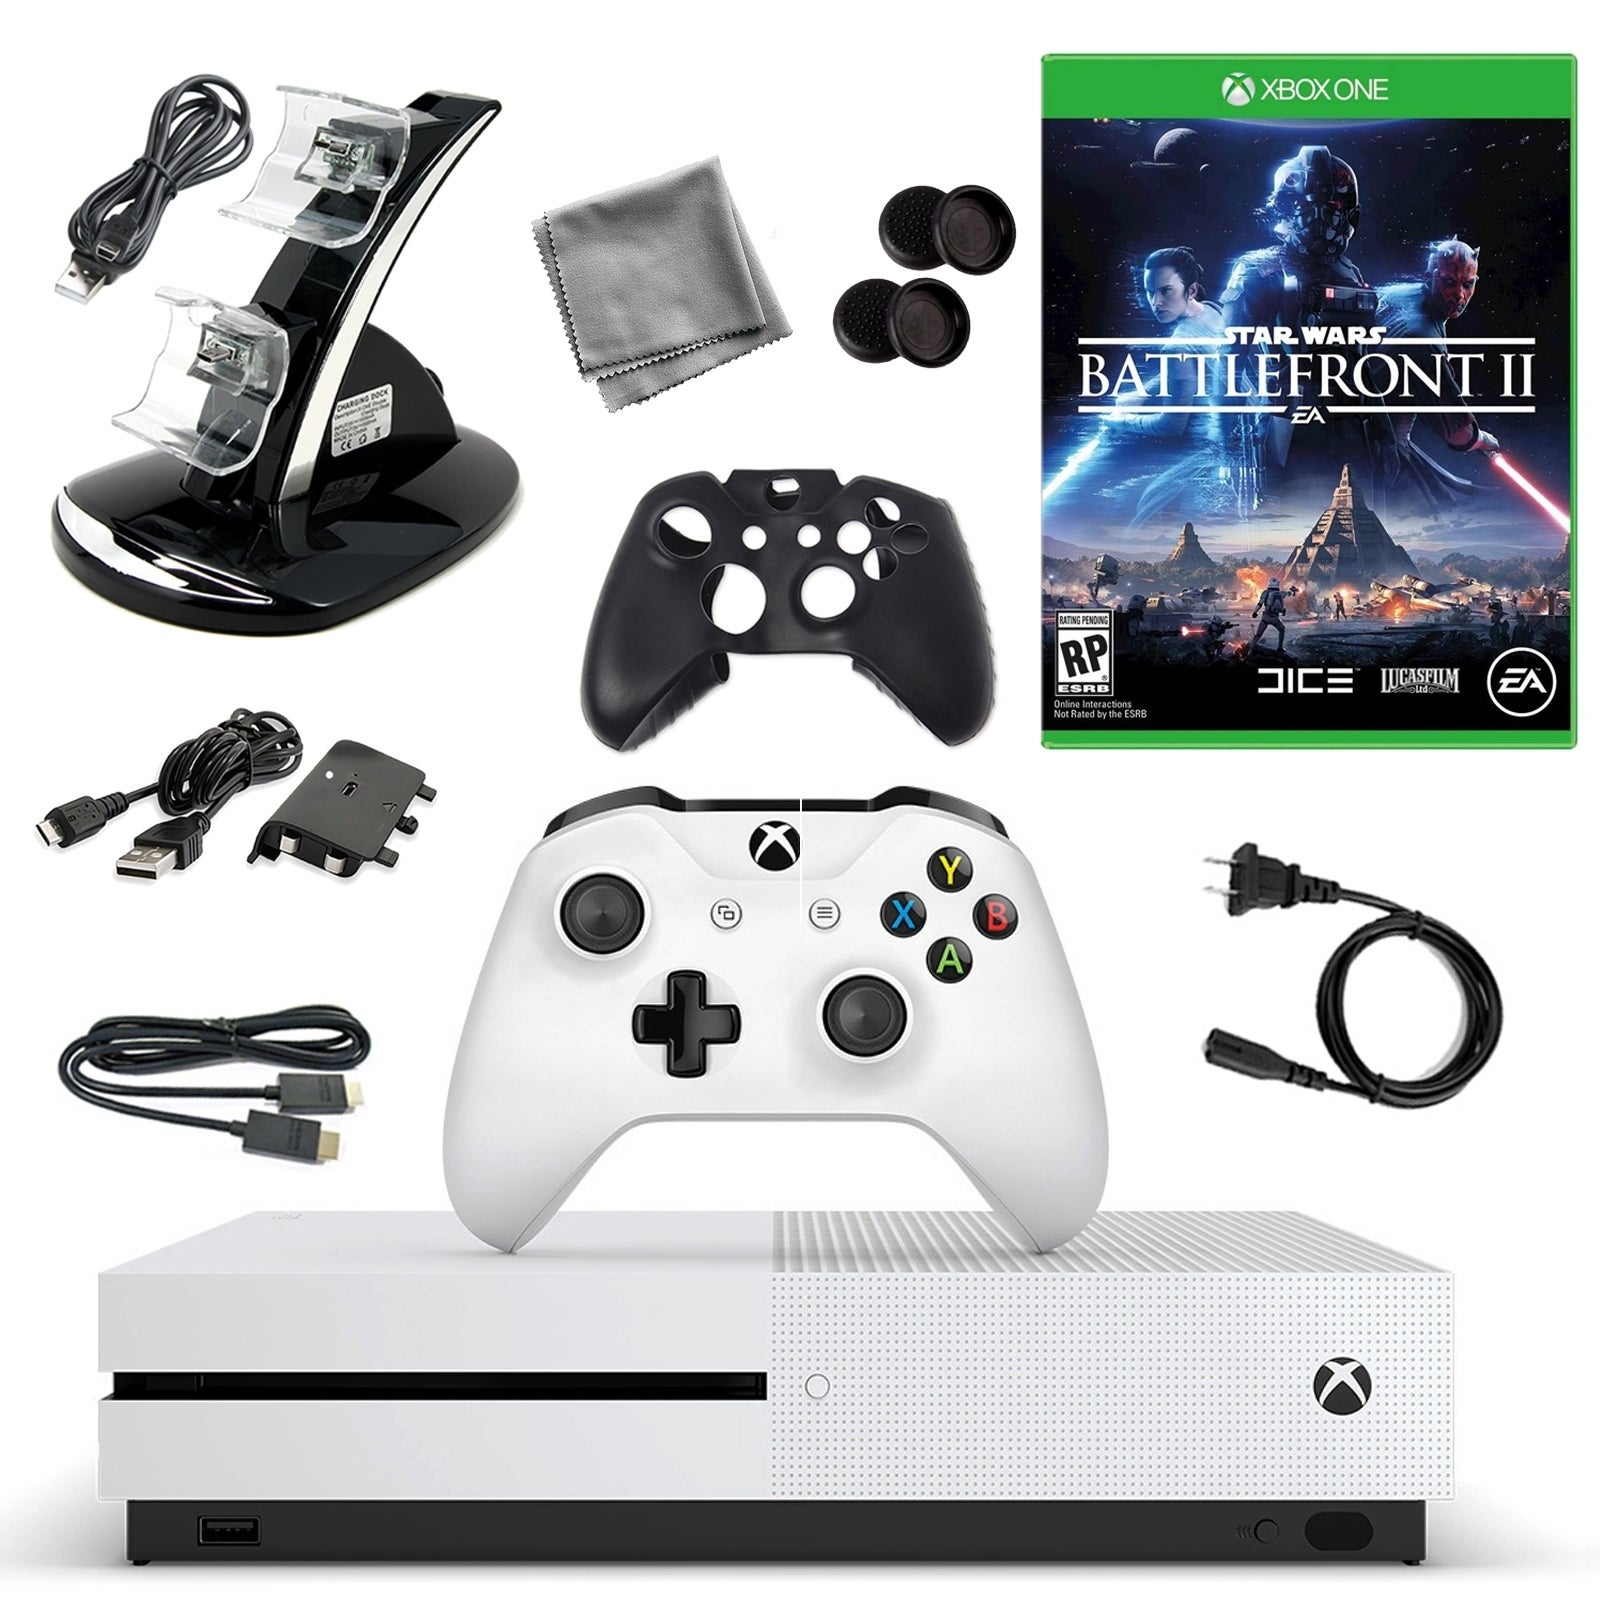 XBox One S 500GB Console with Star Wars Battlefont 2 10 in 1 Accessories